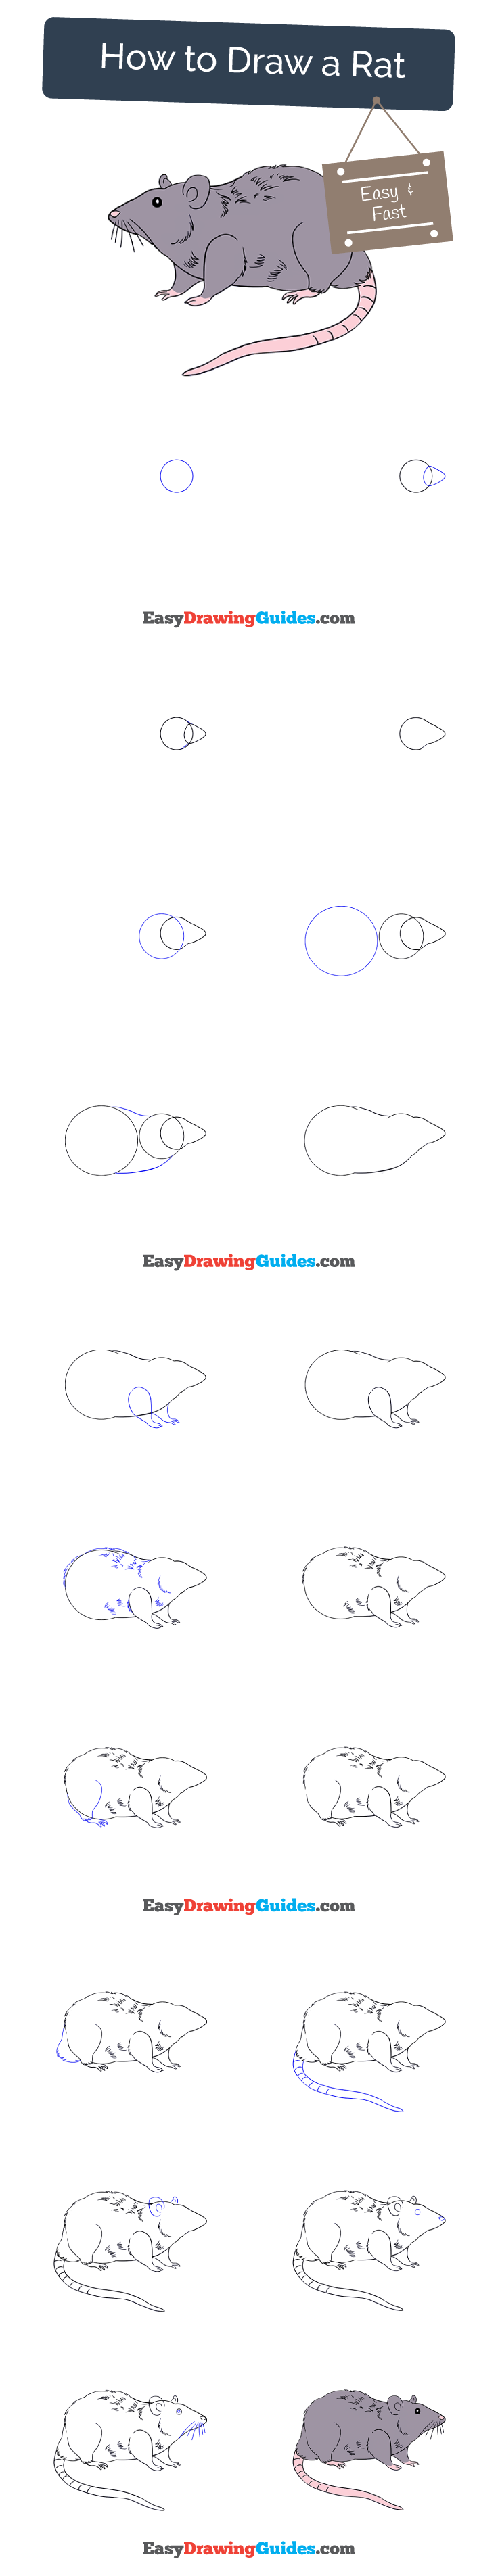 How To Draw A Rat Drawing Ideas Drawing Tutorials For